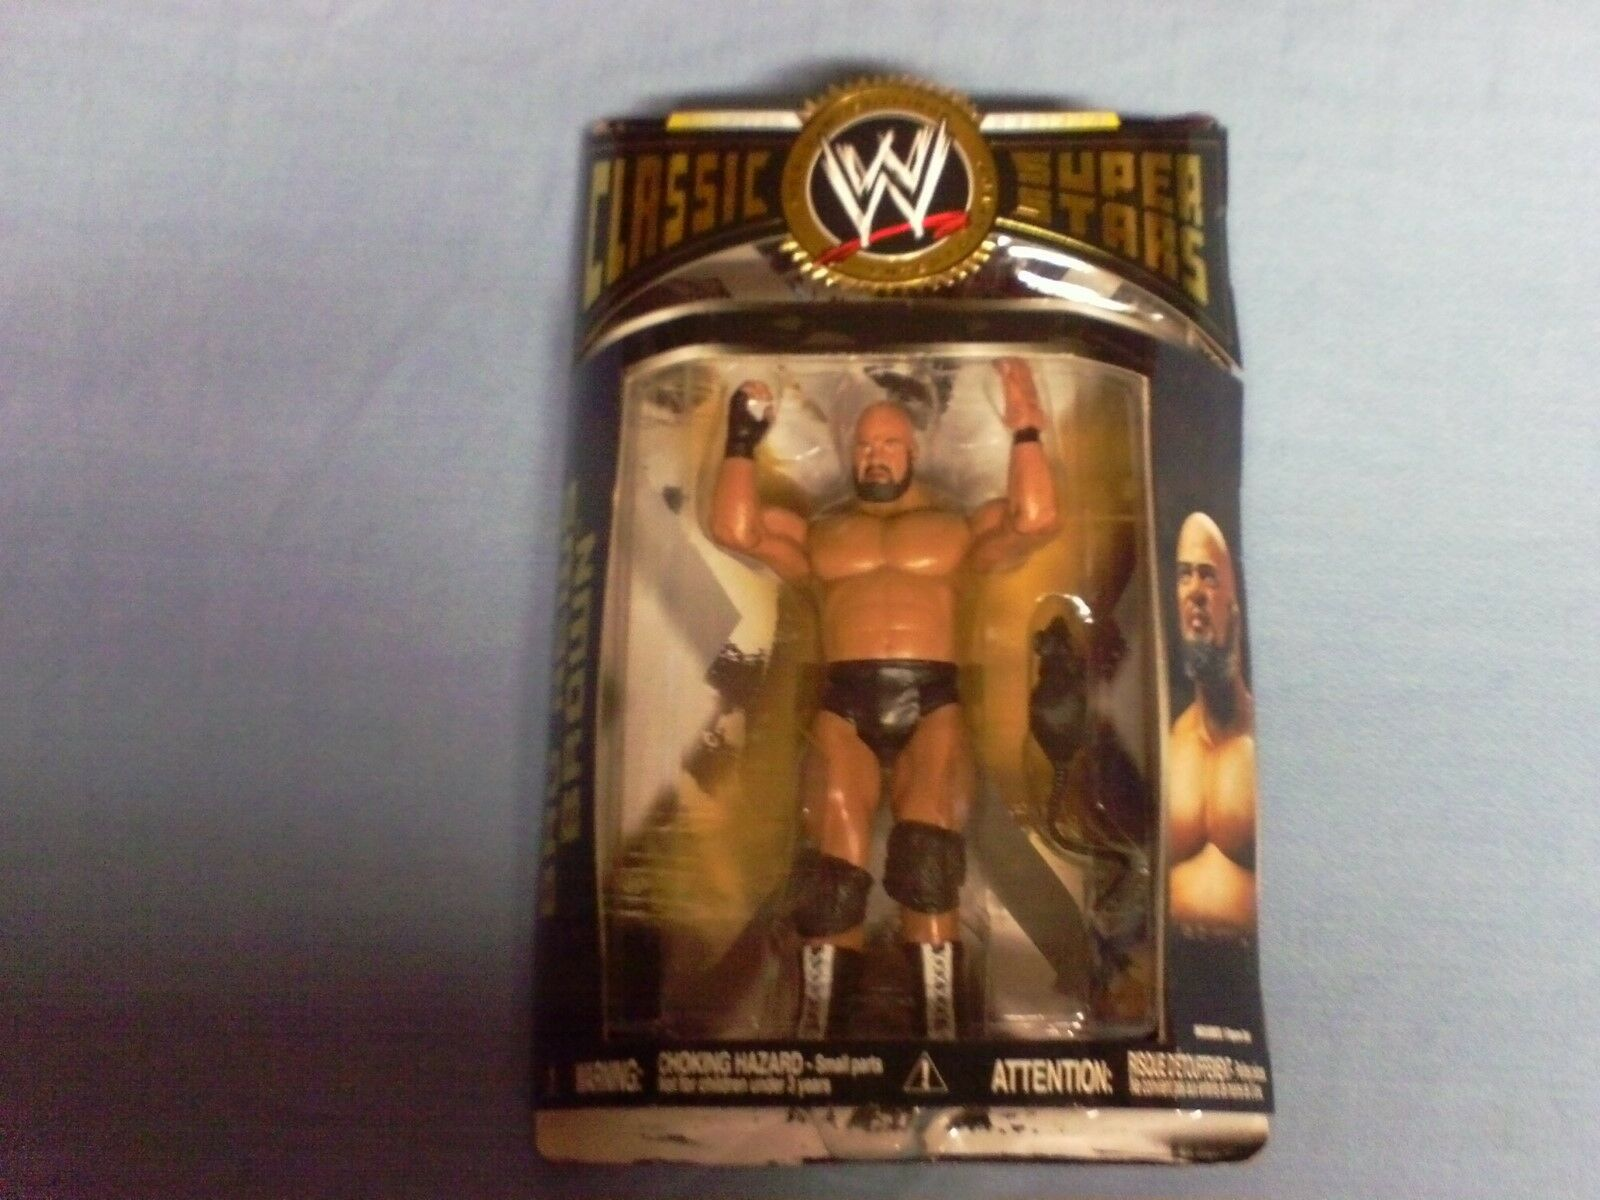 WWE CLASSIC SUPERSTARS BAD NEWS BROWN